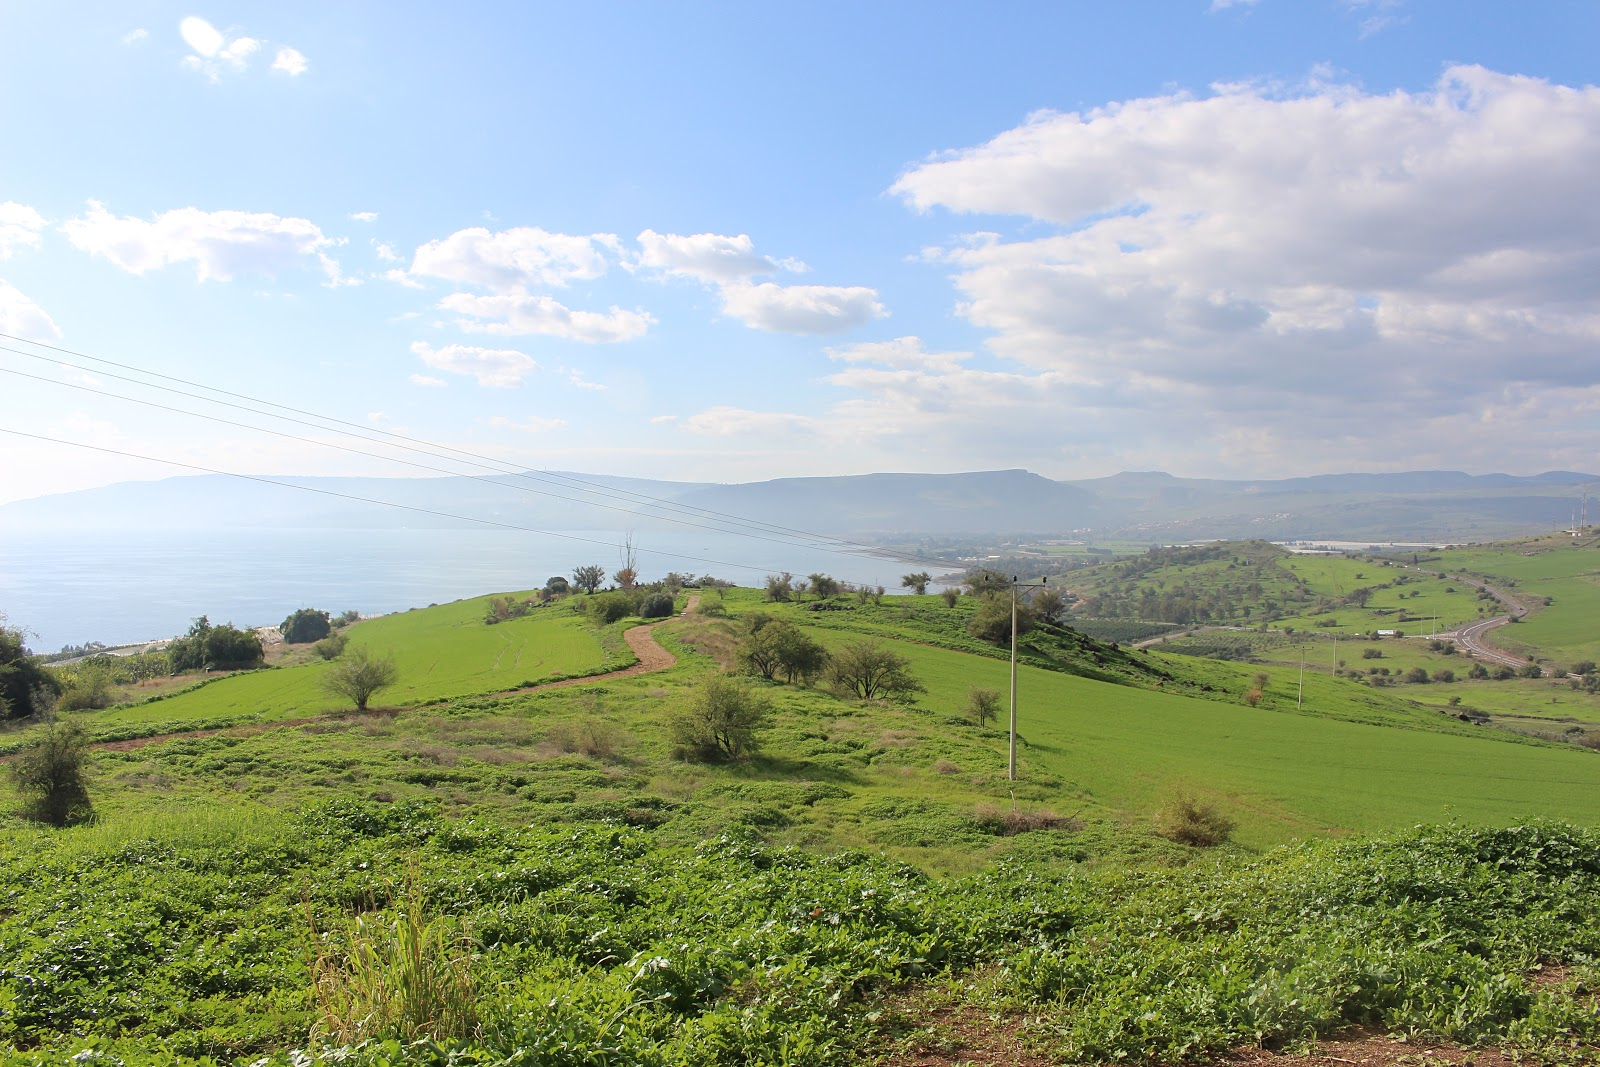 Mount of Beatitudes: Things To Do in Israel